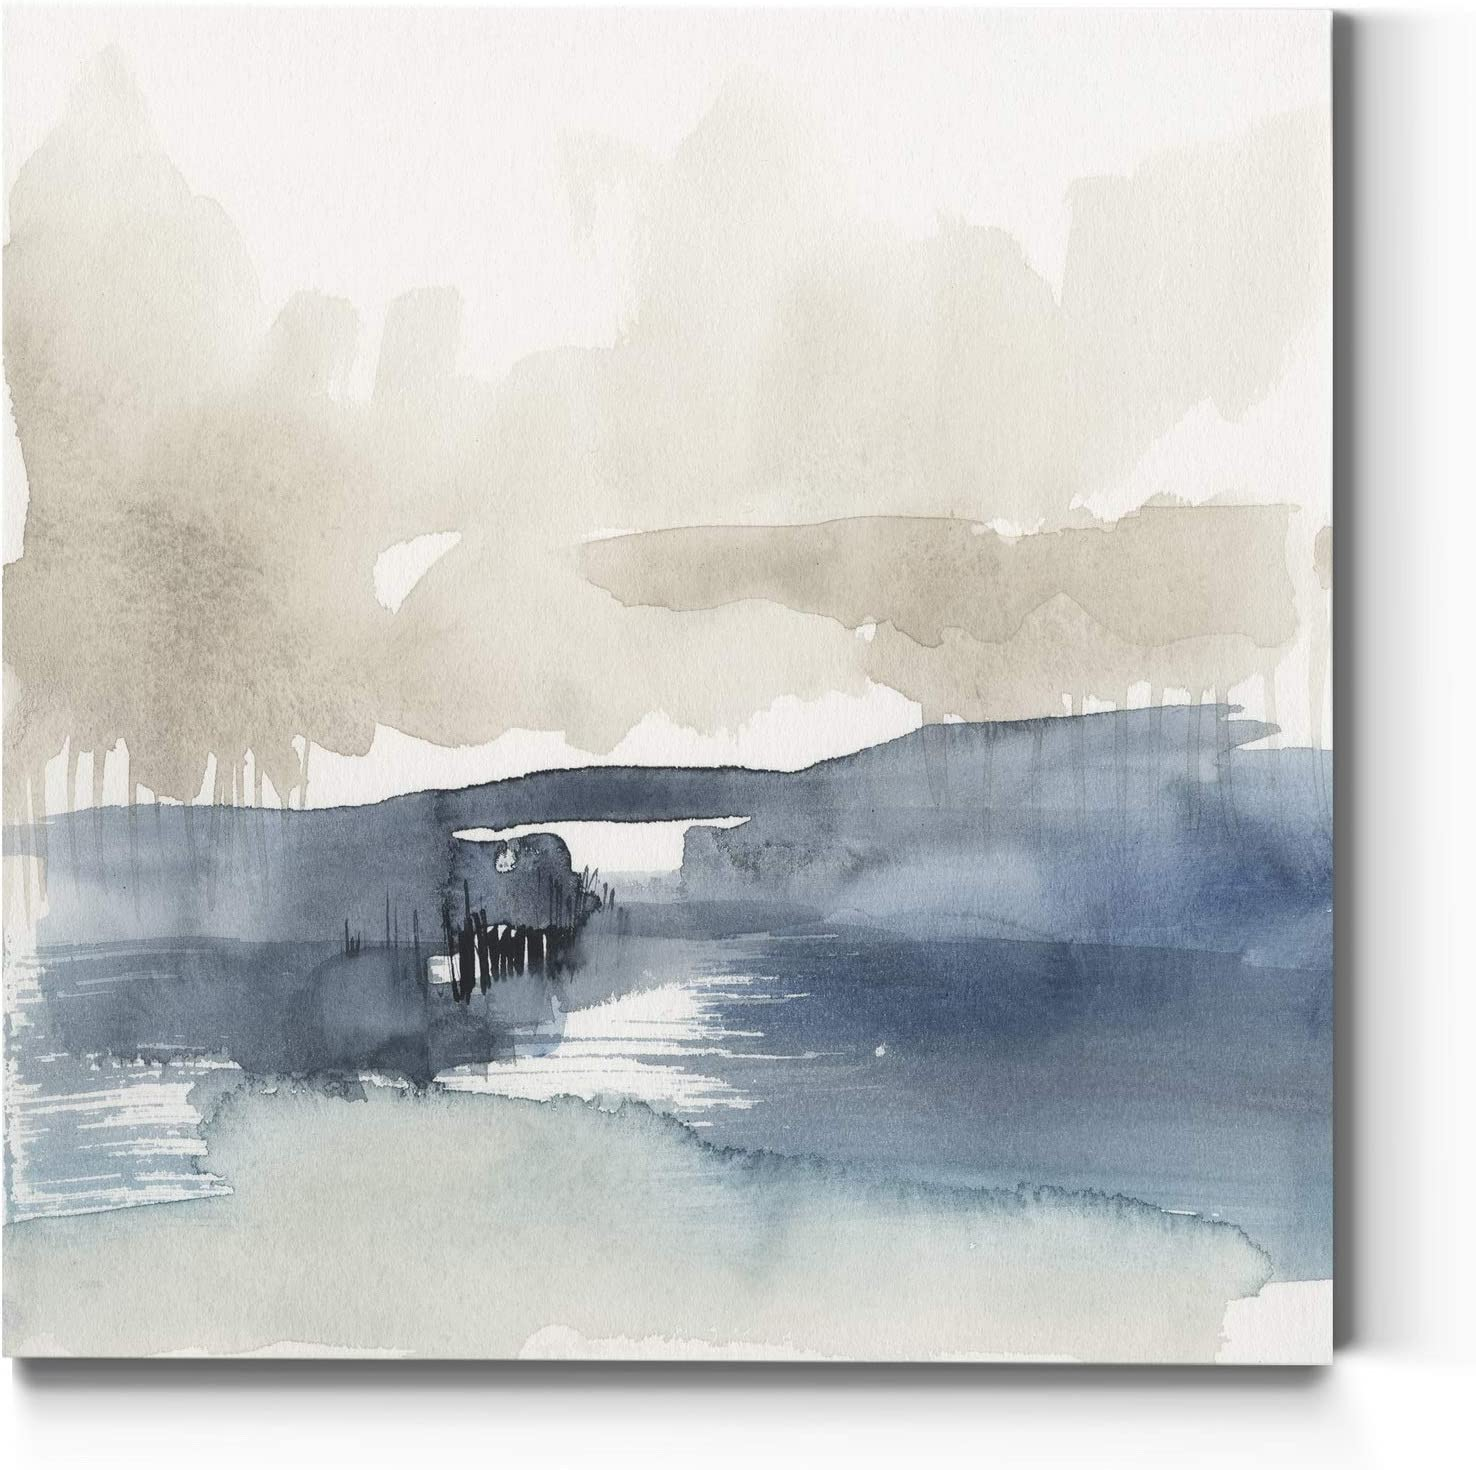 Neutral Color Wall Art, Wall Décor Canvas, Beaches, Floral, Animals, Bohemian, & Vintage Styles, Ready to Hang -Fog on The Horizon IV 16X16